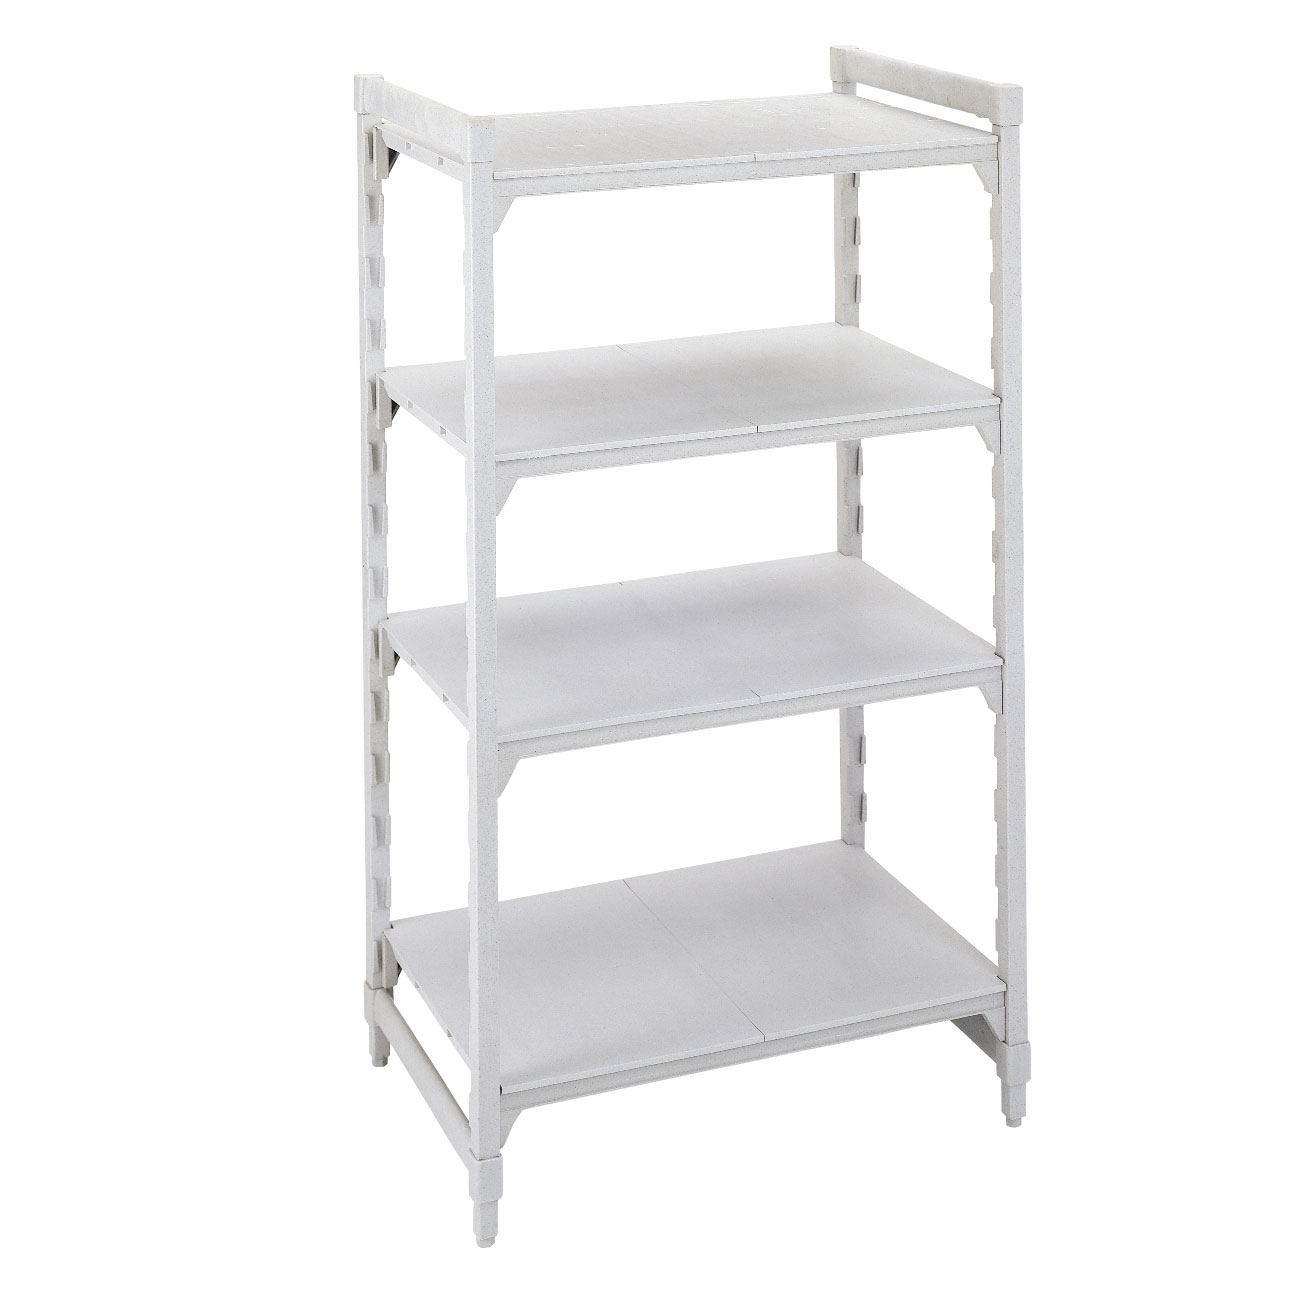 Cambro CPU212464S4480 shelving unit, plastic with poly exterior steel posts